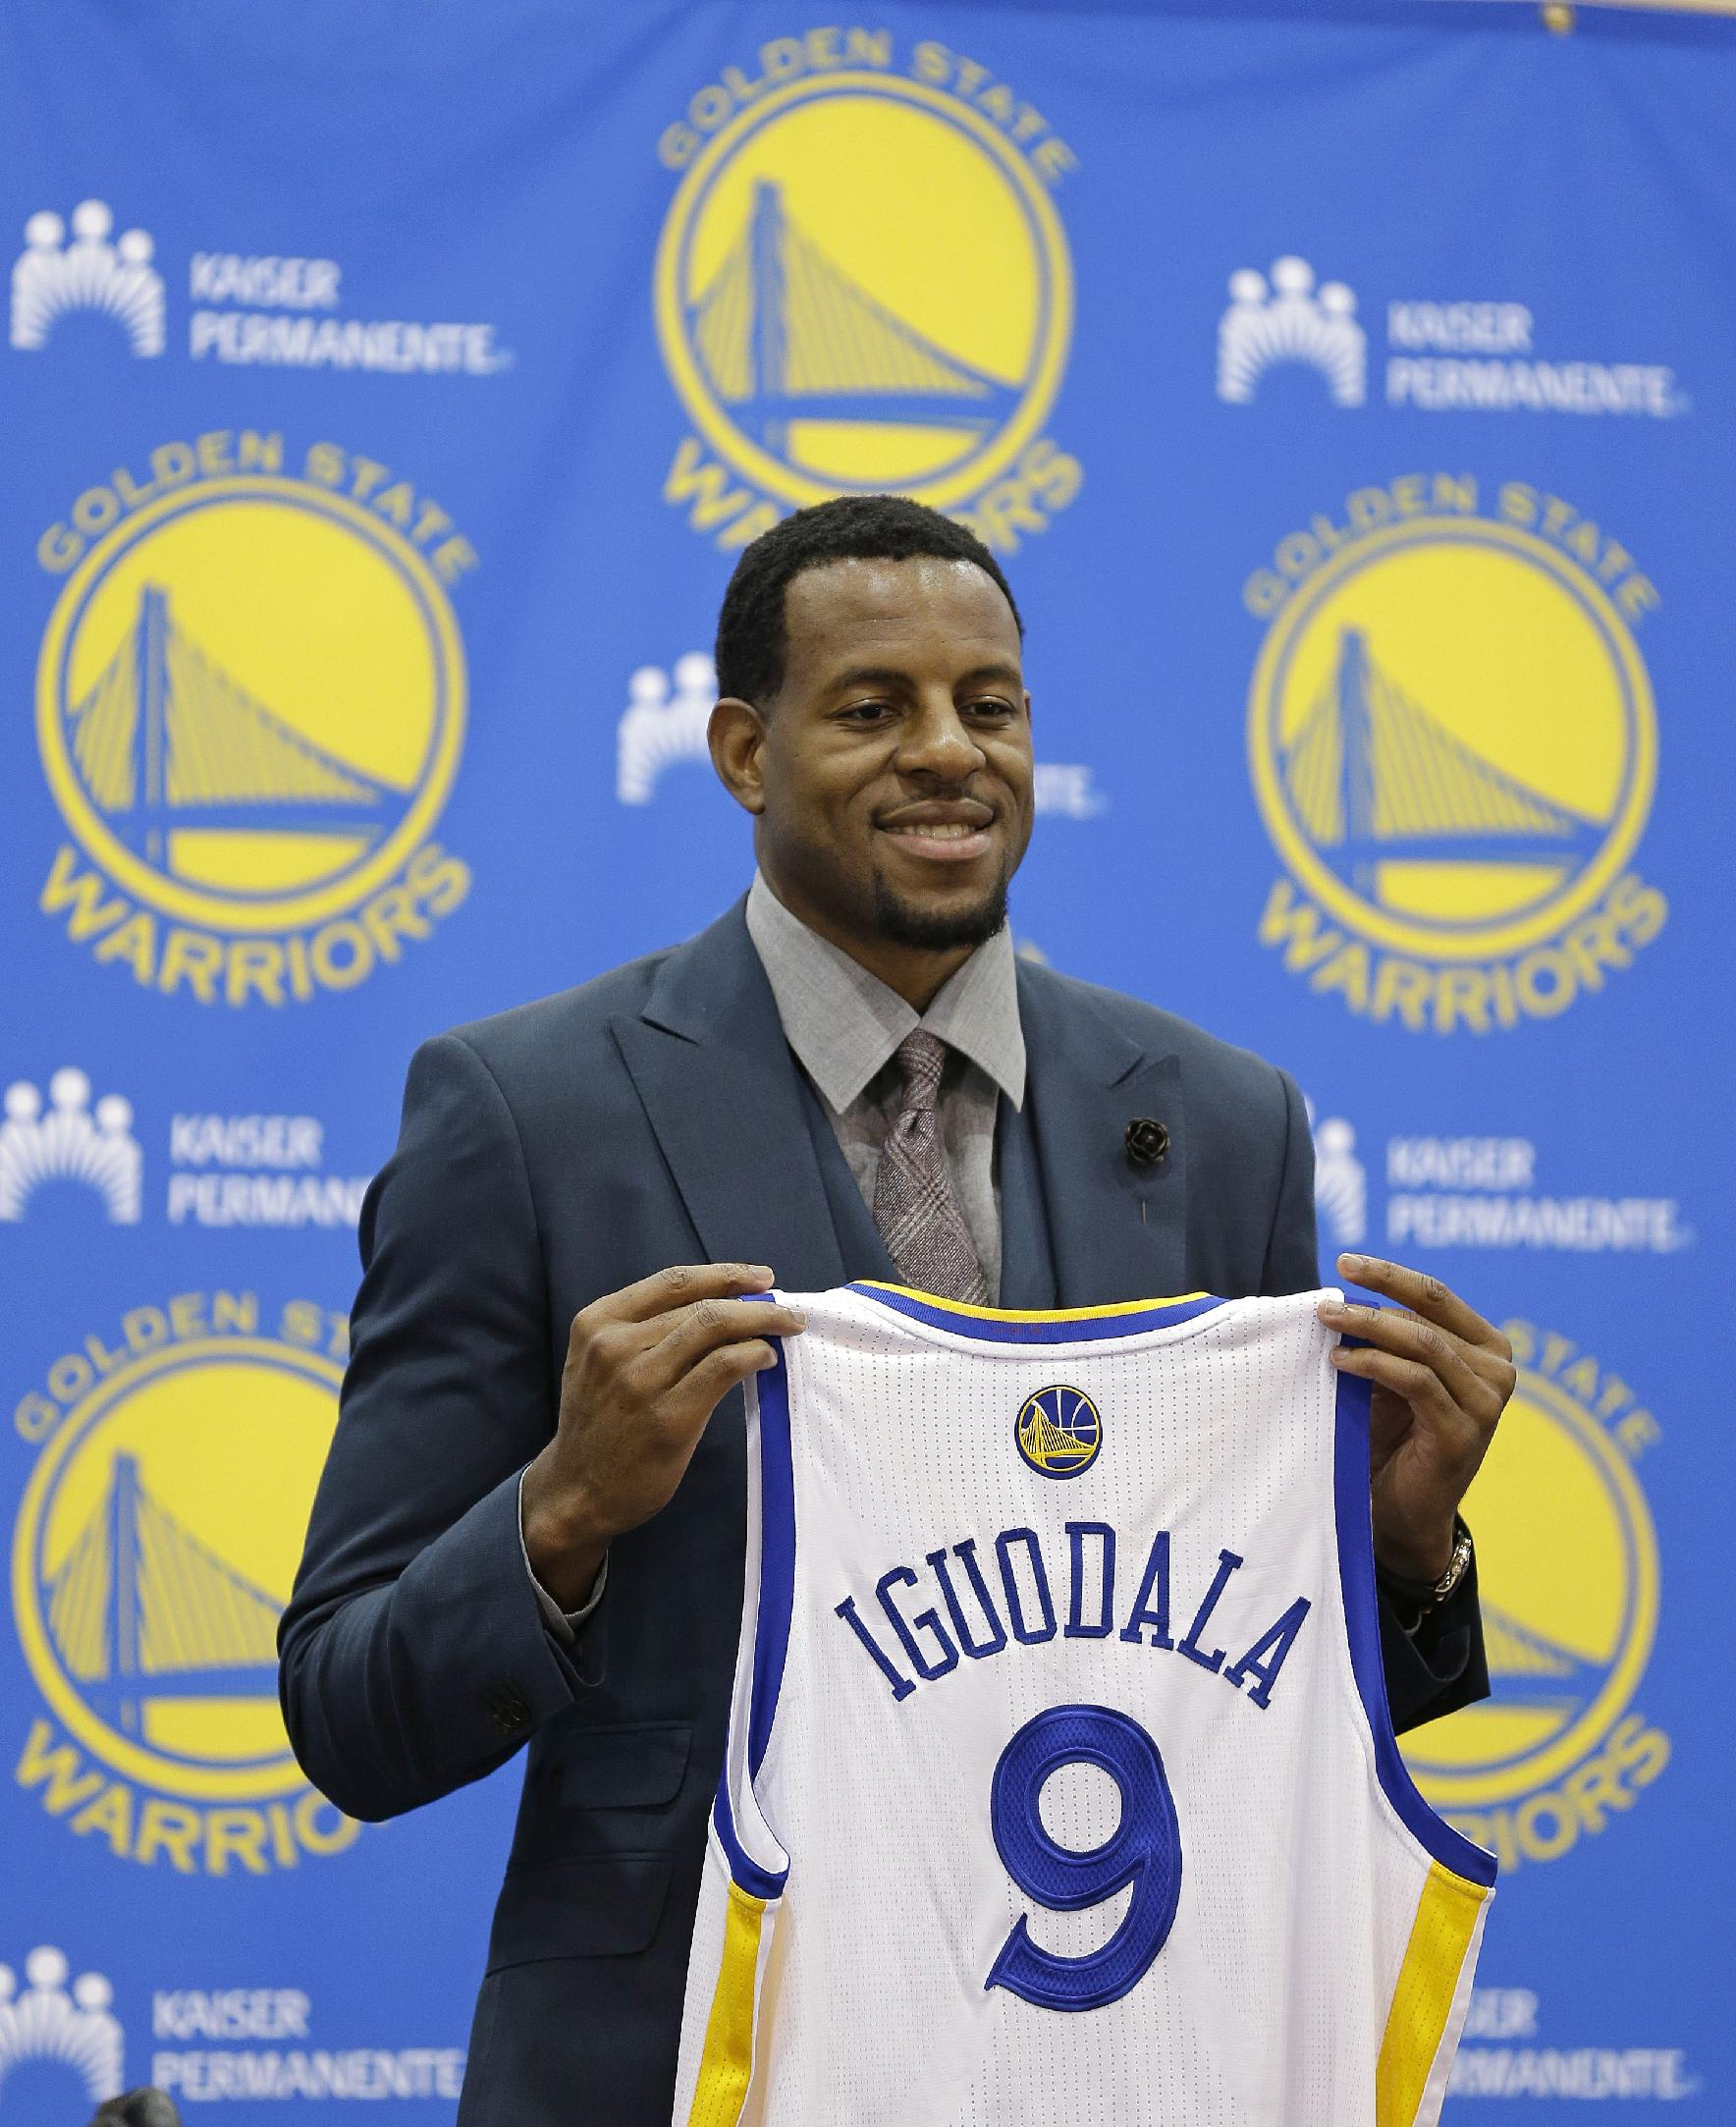 In this July 11, 2013, file photo, Andre Iguodala poses with his jersey after being introduced by the Golden State Warriors NBA basketball team at a news conference in Oakland, Calif. Iguodala said Wednesday, Sept. 18, that Golden State is aiming for